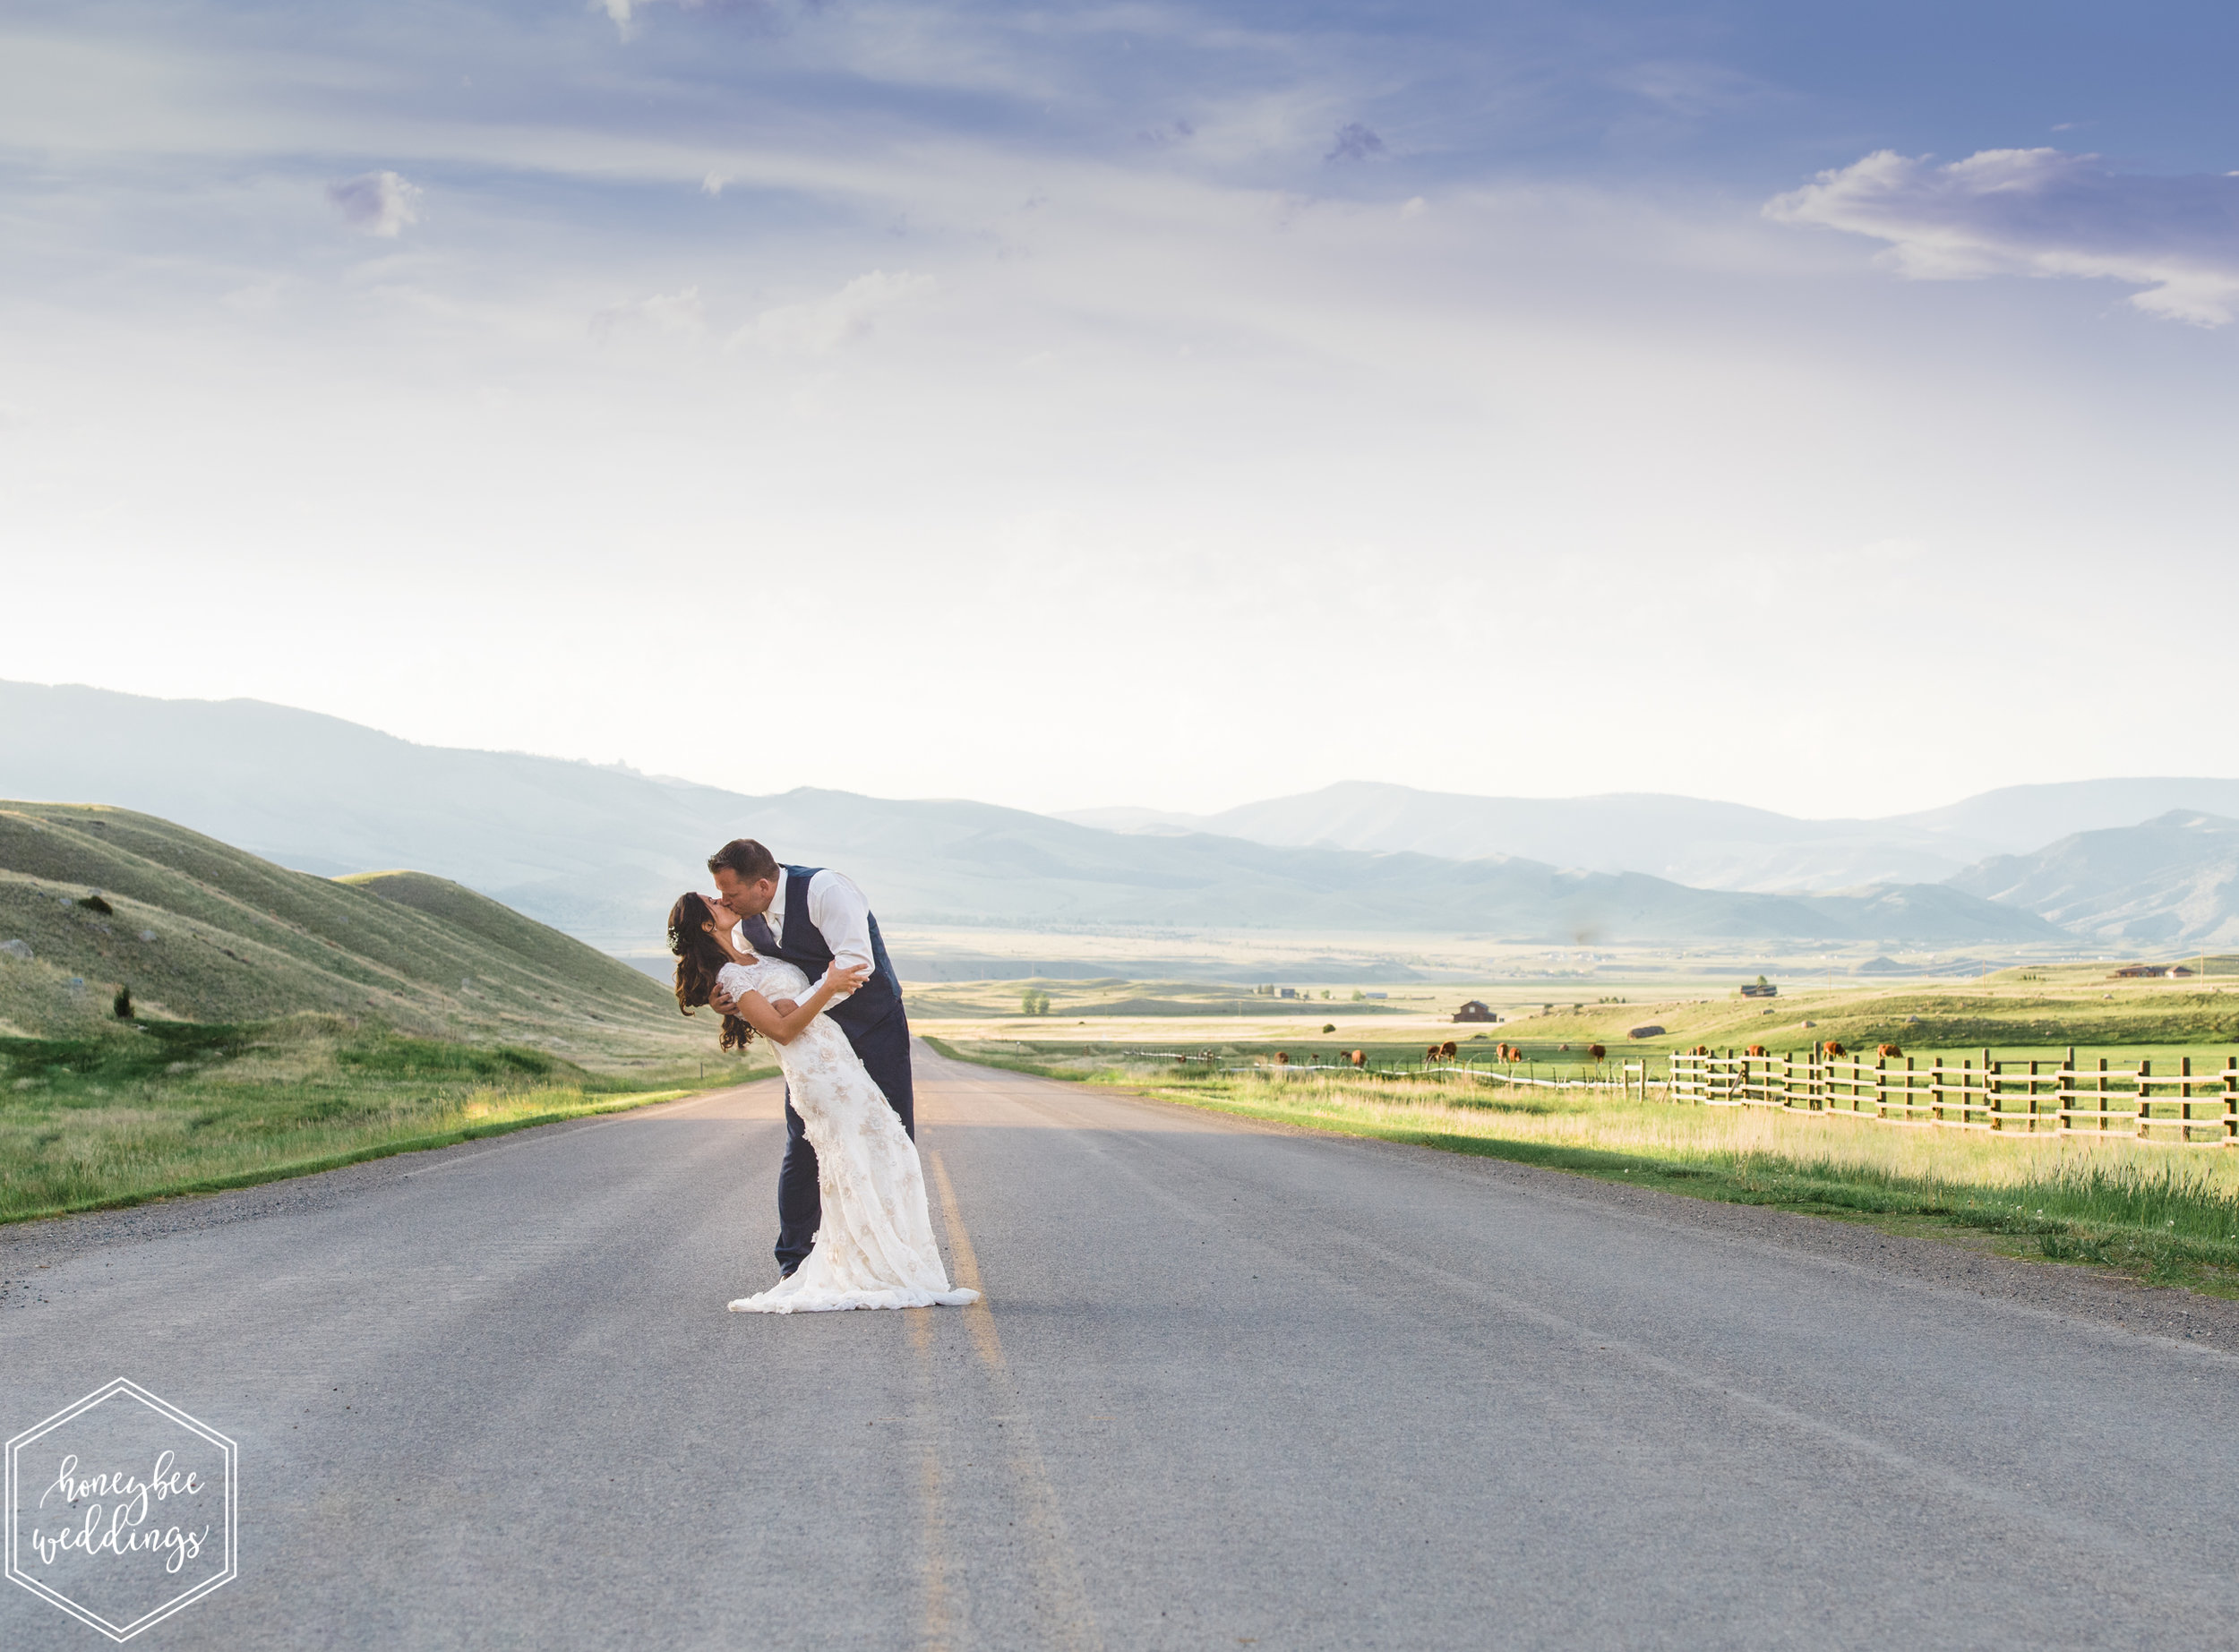 059Montana wedding photographer videographer_Chico hot springs wedding_Honeybee Weddings_Claudia & Bill_June 03, 2019-793.jpg